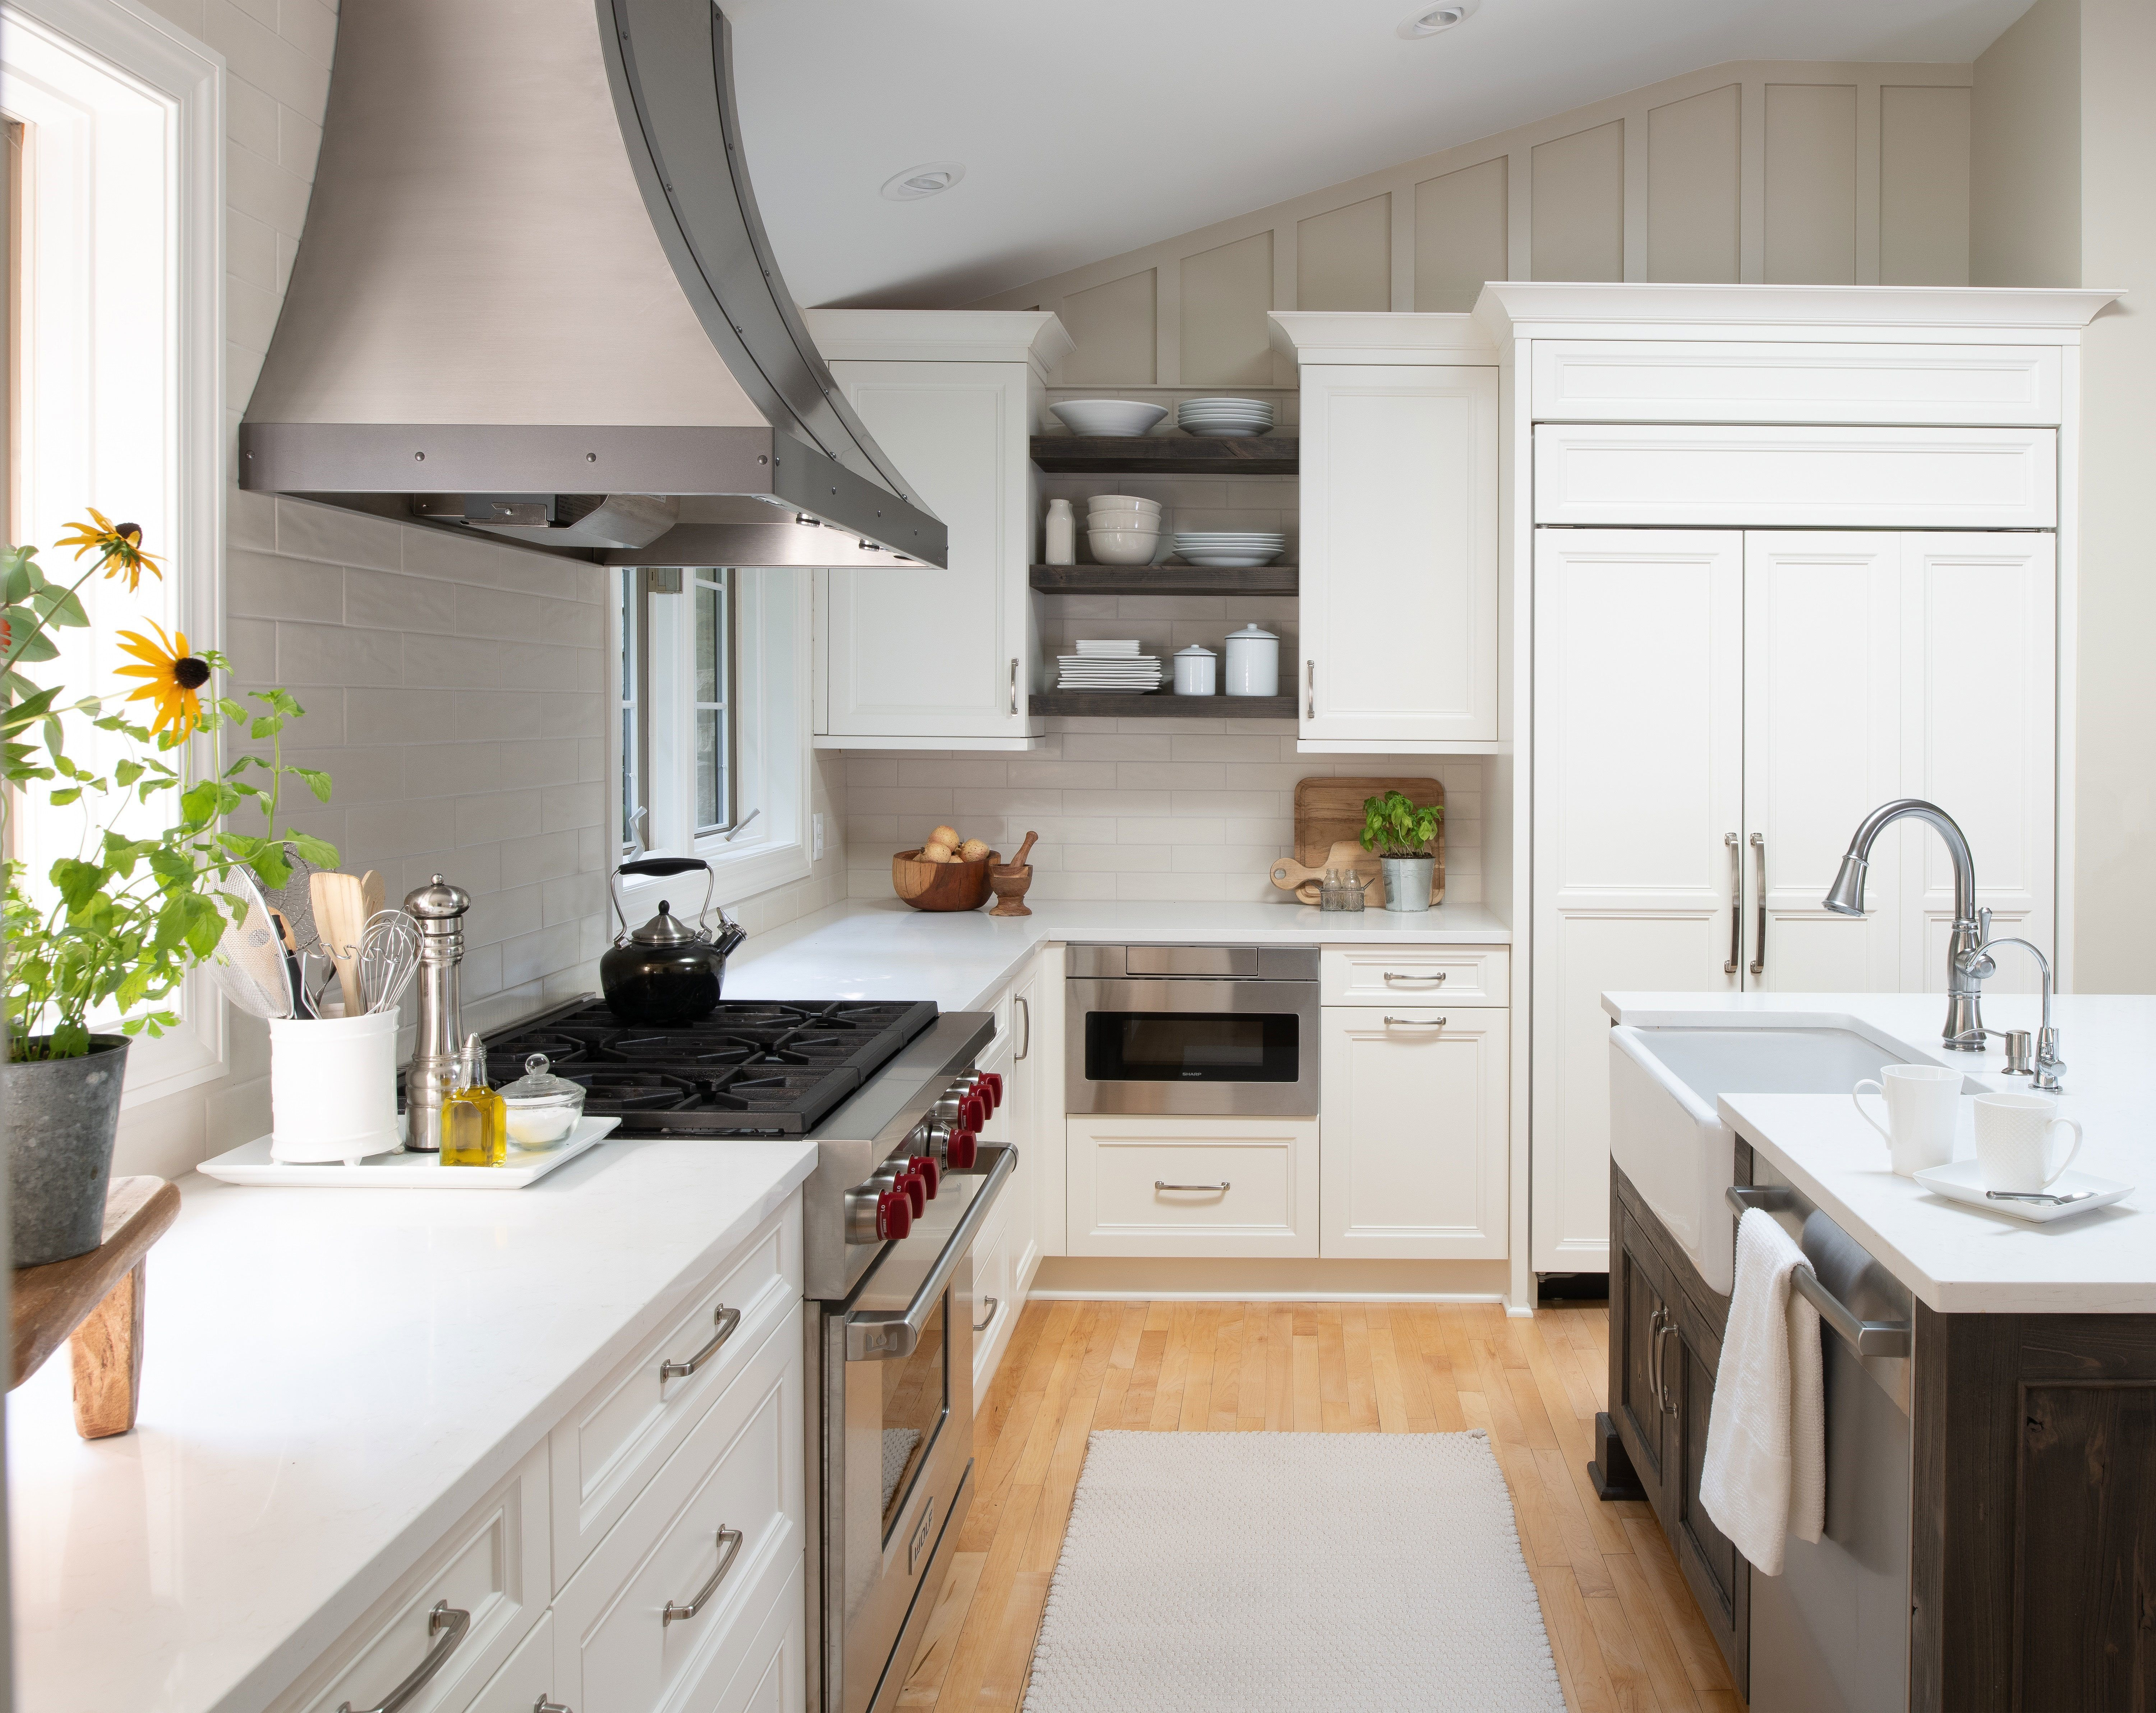 timeline of a kitchen remodel part 1: planning your dream kitchen